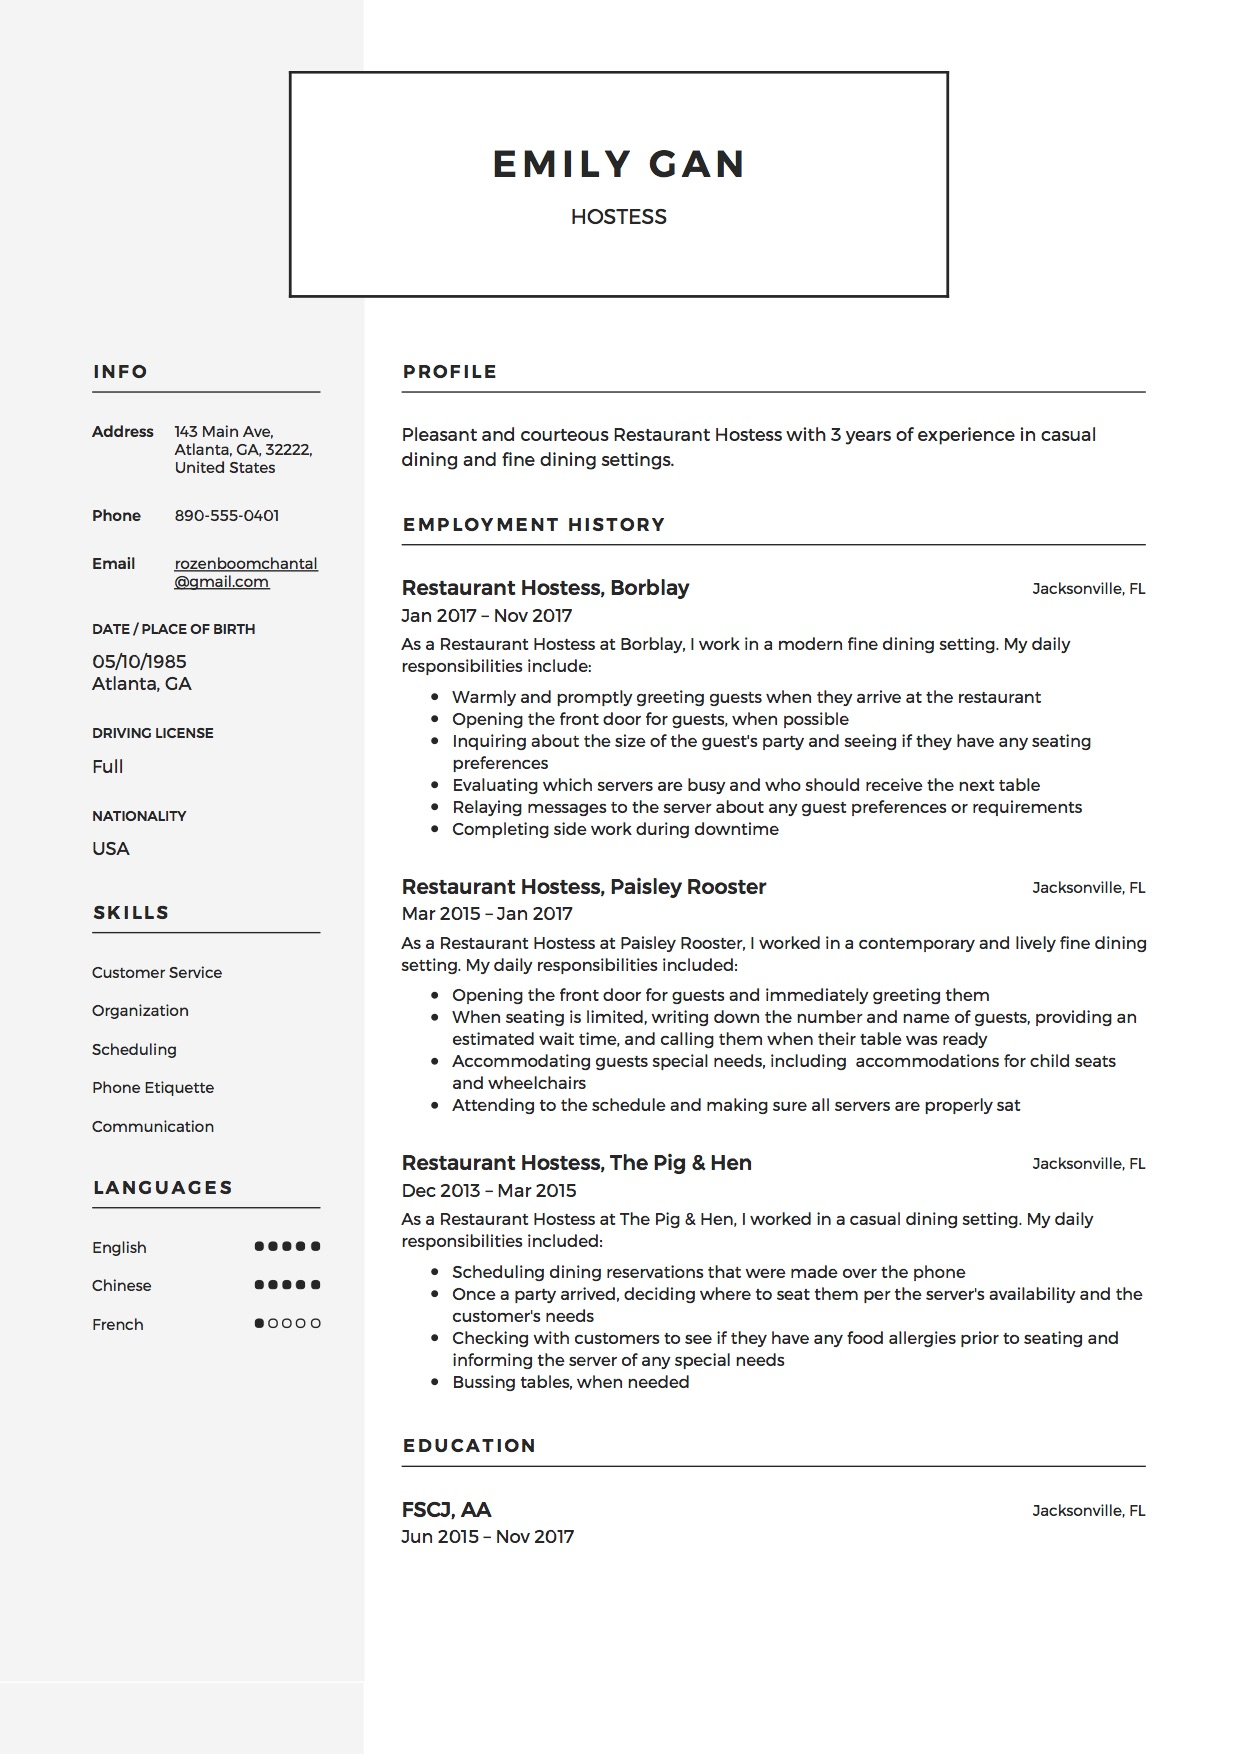 hostess resume guide examples free downloads for restaurant emily gan sample experience Resume Resume Examples For Restaurant Hostess